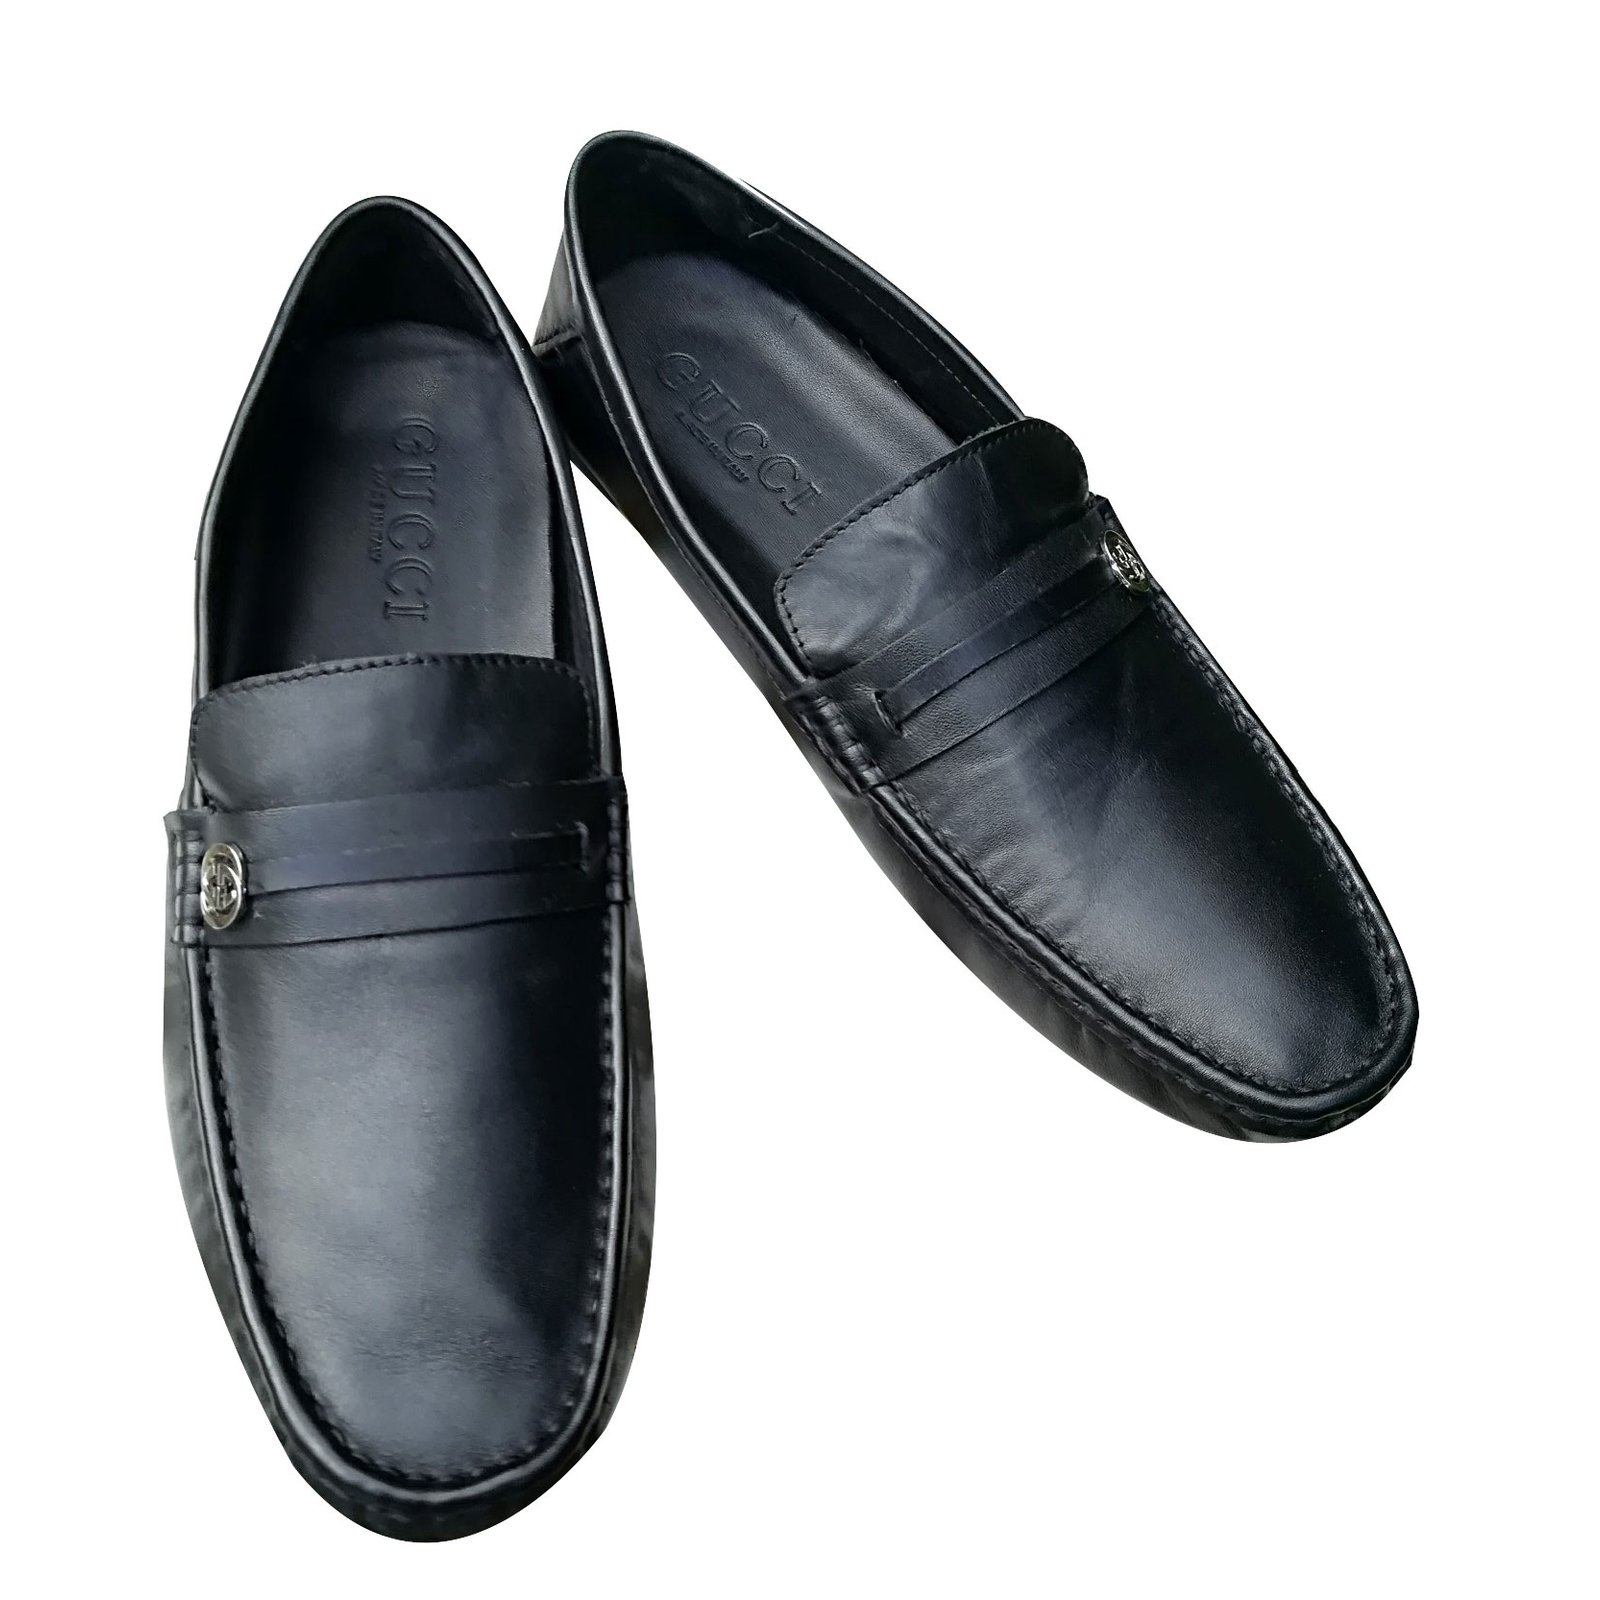 1b5fd995ce65 Gucci Loafers Slip ons Loafers Slip ons Leather Black ref.66771 ...